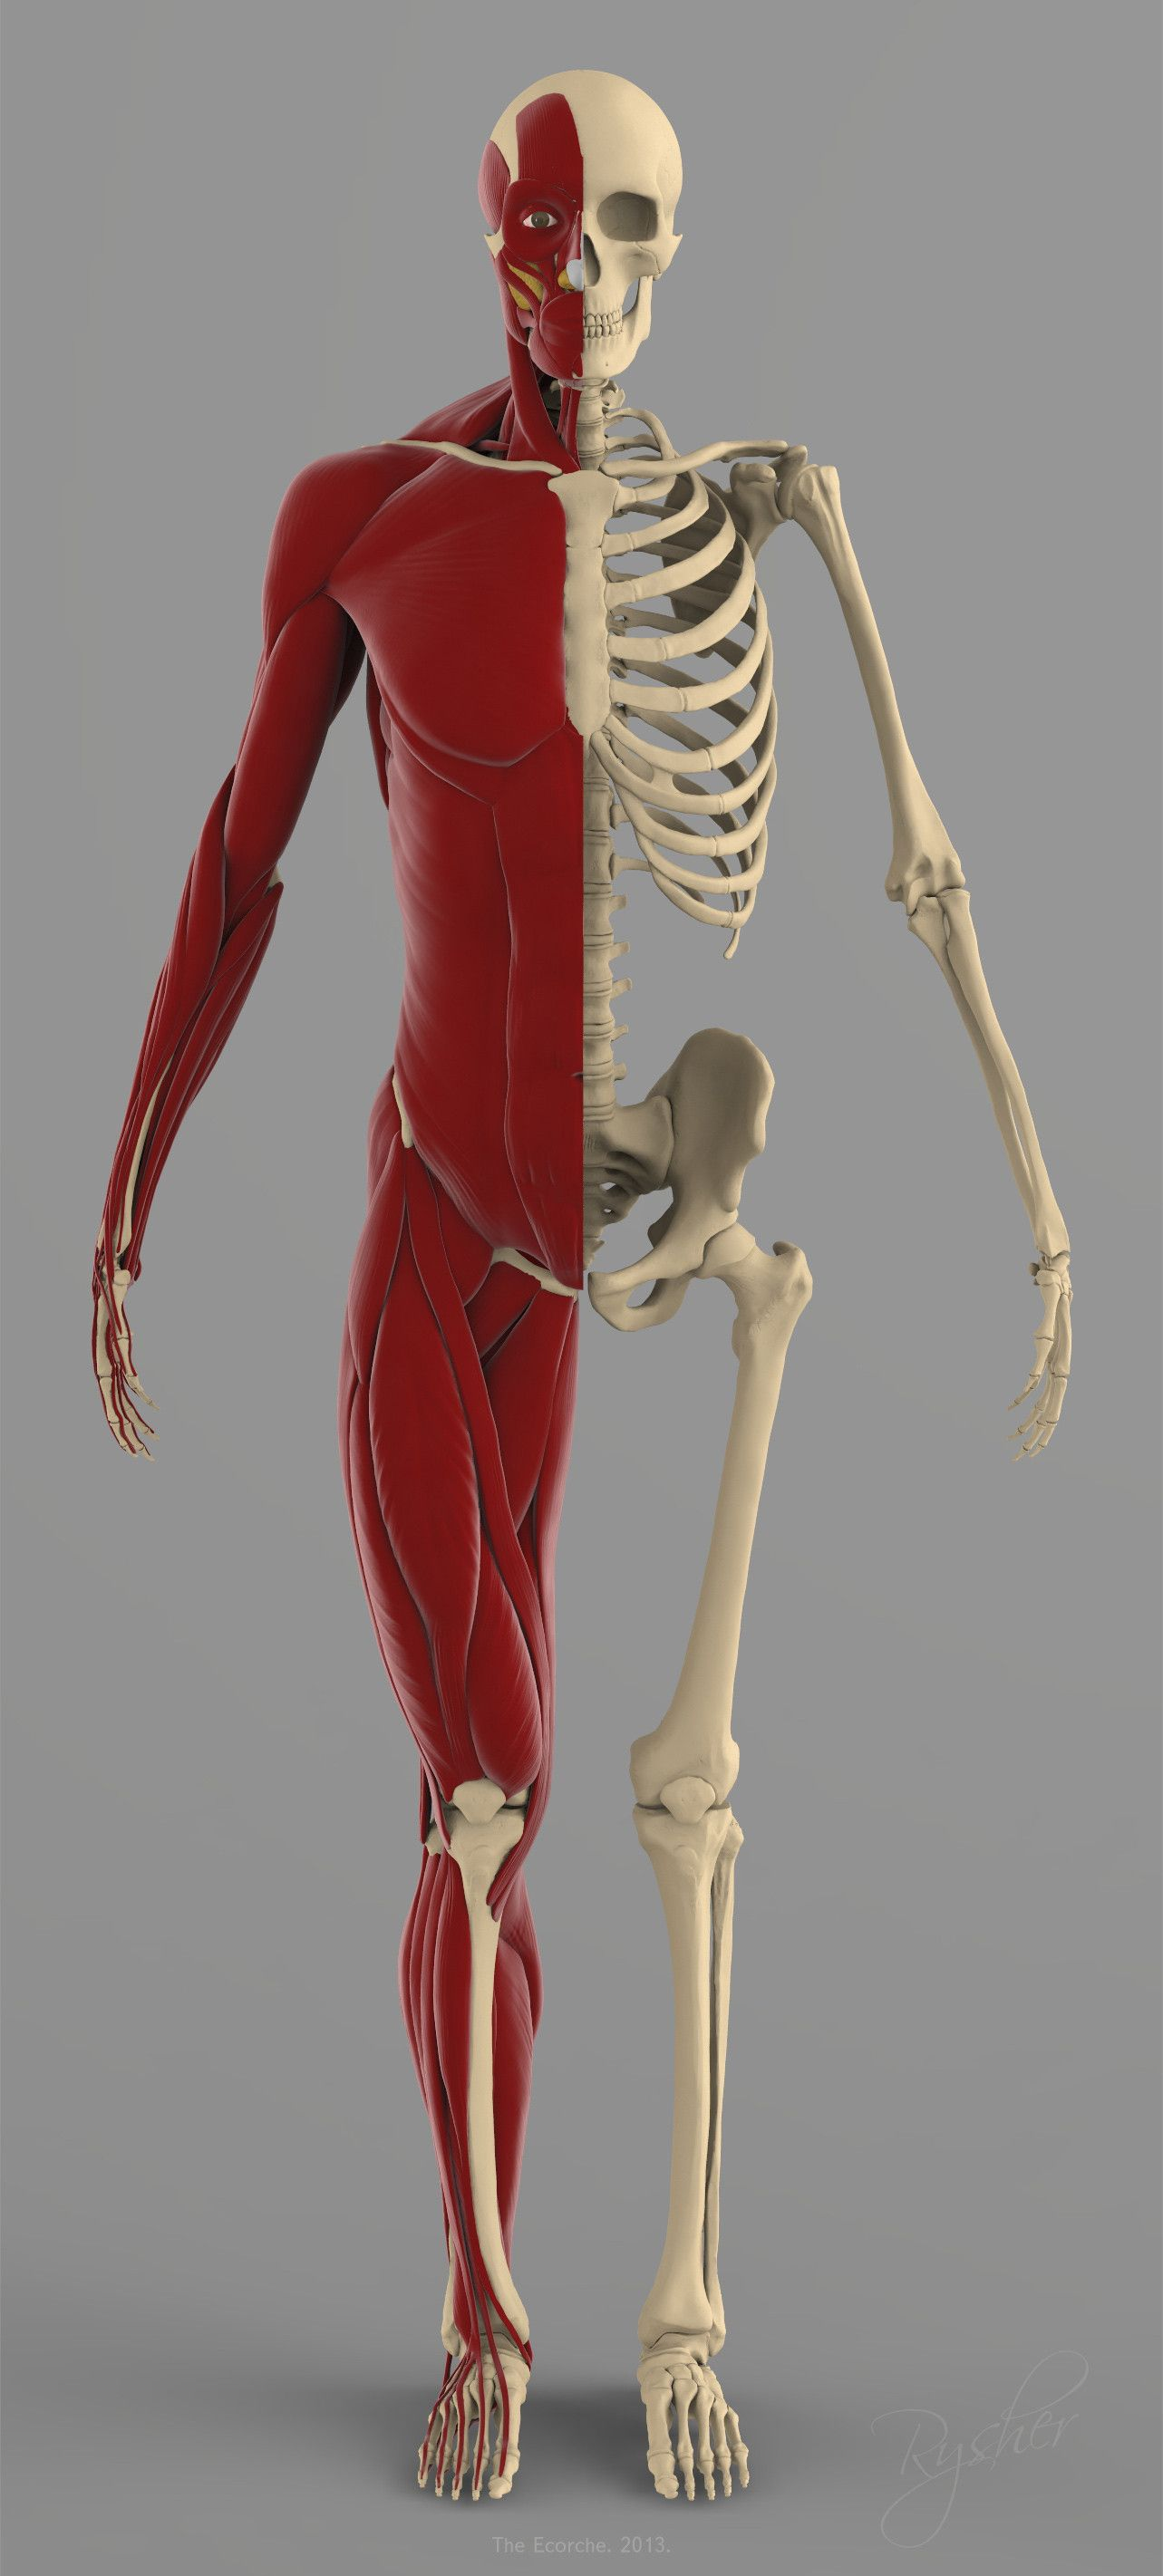 precise human skeleton muscles 3d model | drawings | Pinterest ...